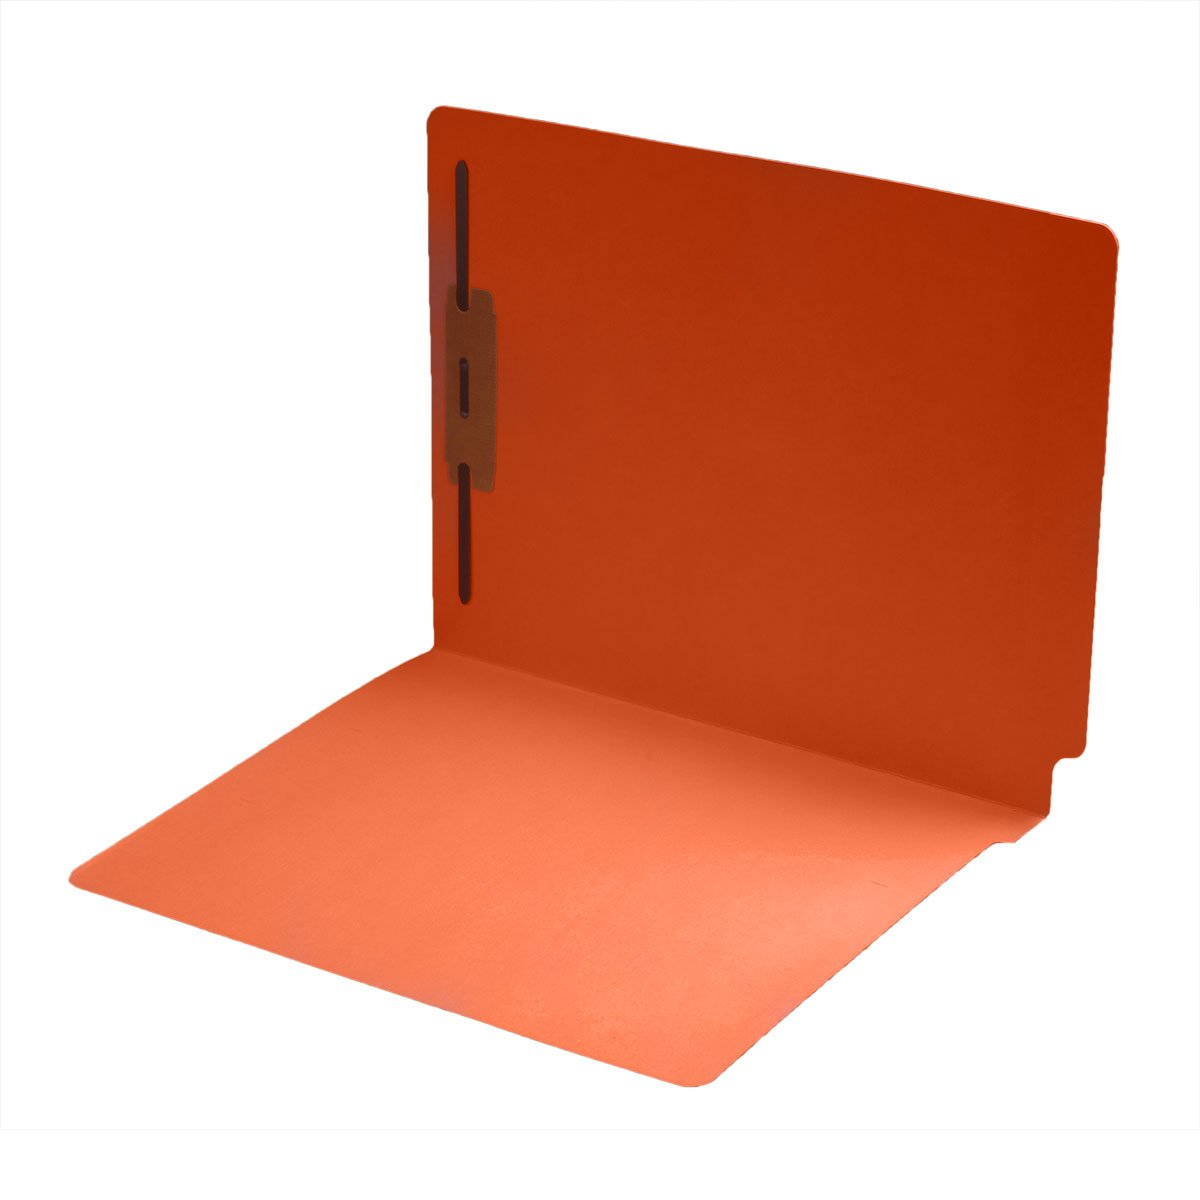 11 pt Color Folders, Full Cut 2-Ply End Tab, Letter Size, Fastener Pos #1, Orange (Box of 50) by Ecom Folders